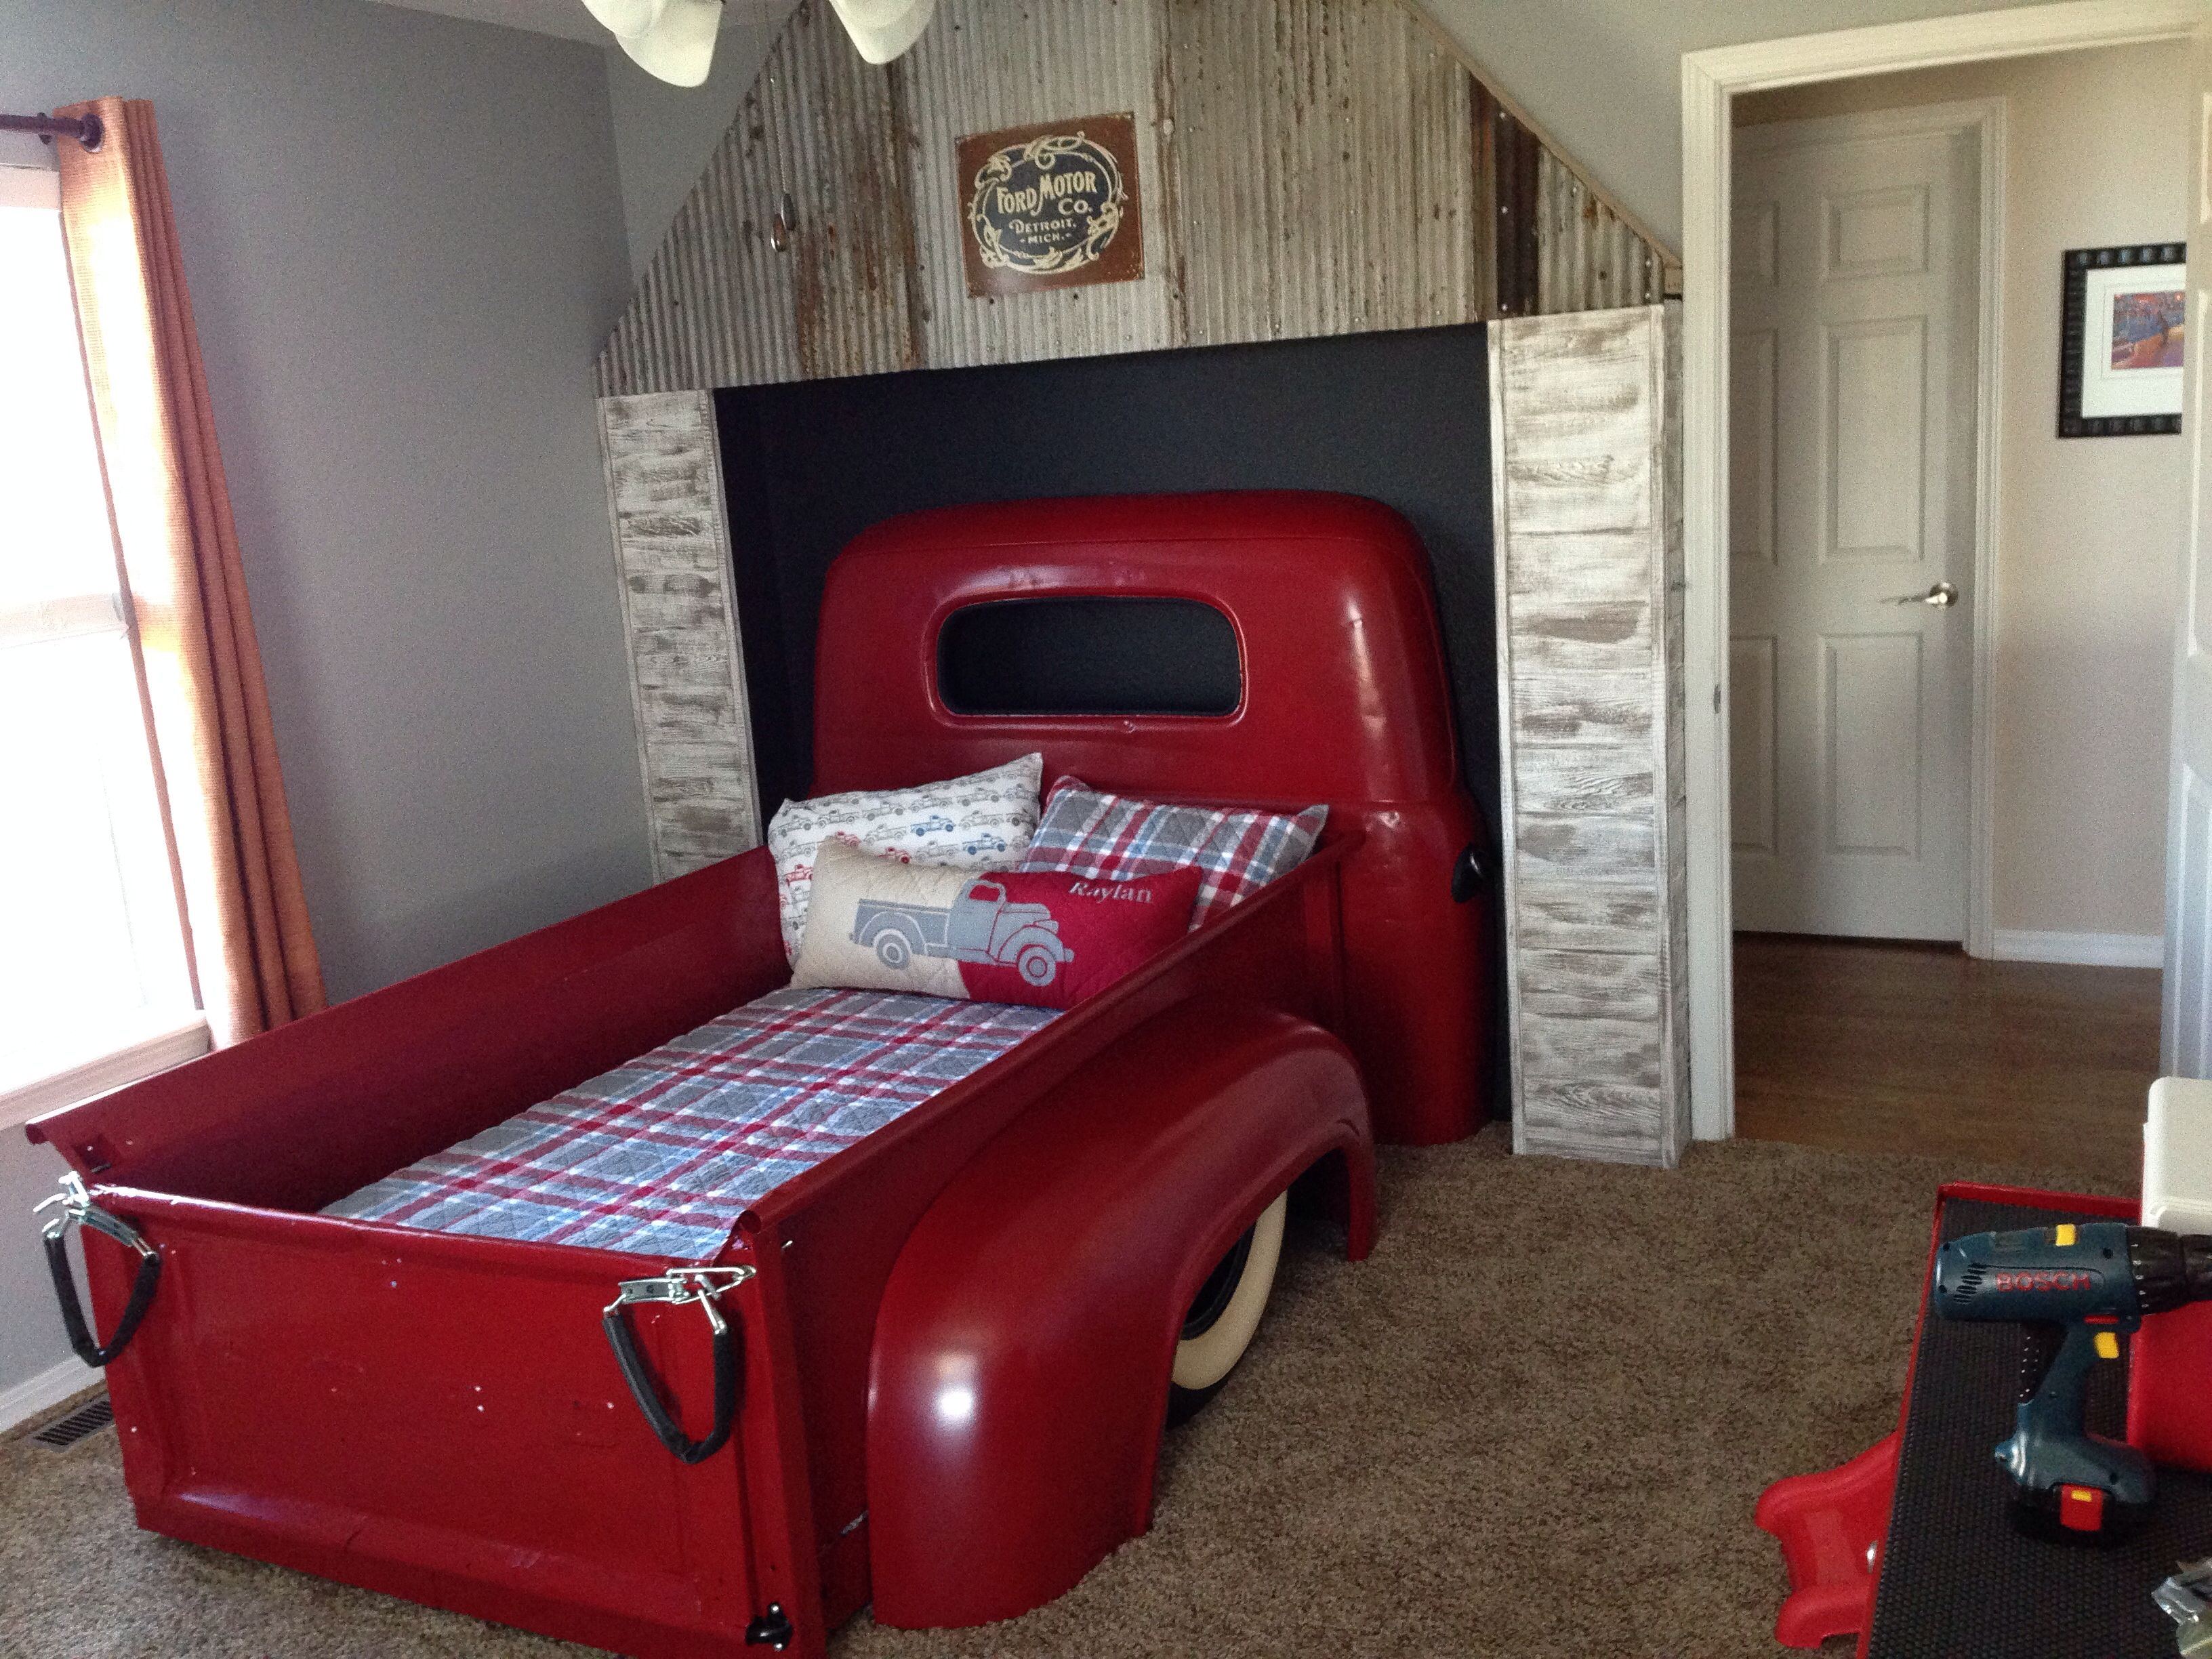 kids room fascinating bedroom idea with amazing classic car bed for kids desk fur rug high gloss finish car bed library picture frame pouffe red quilt wall - Boys Room Ideas Cars